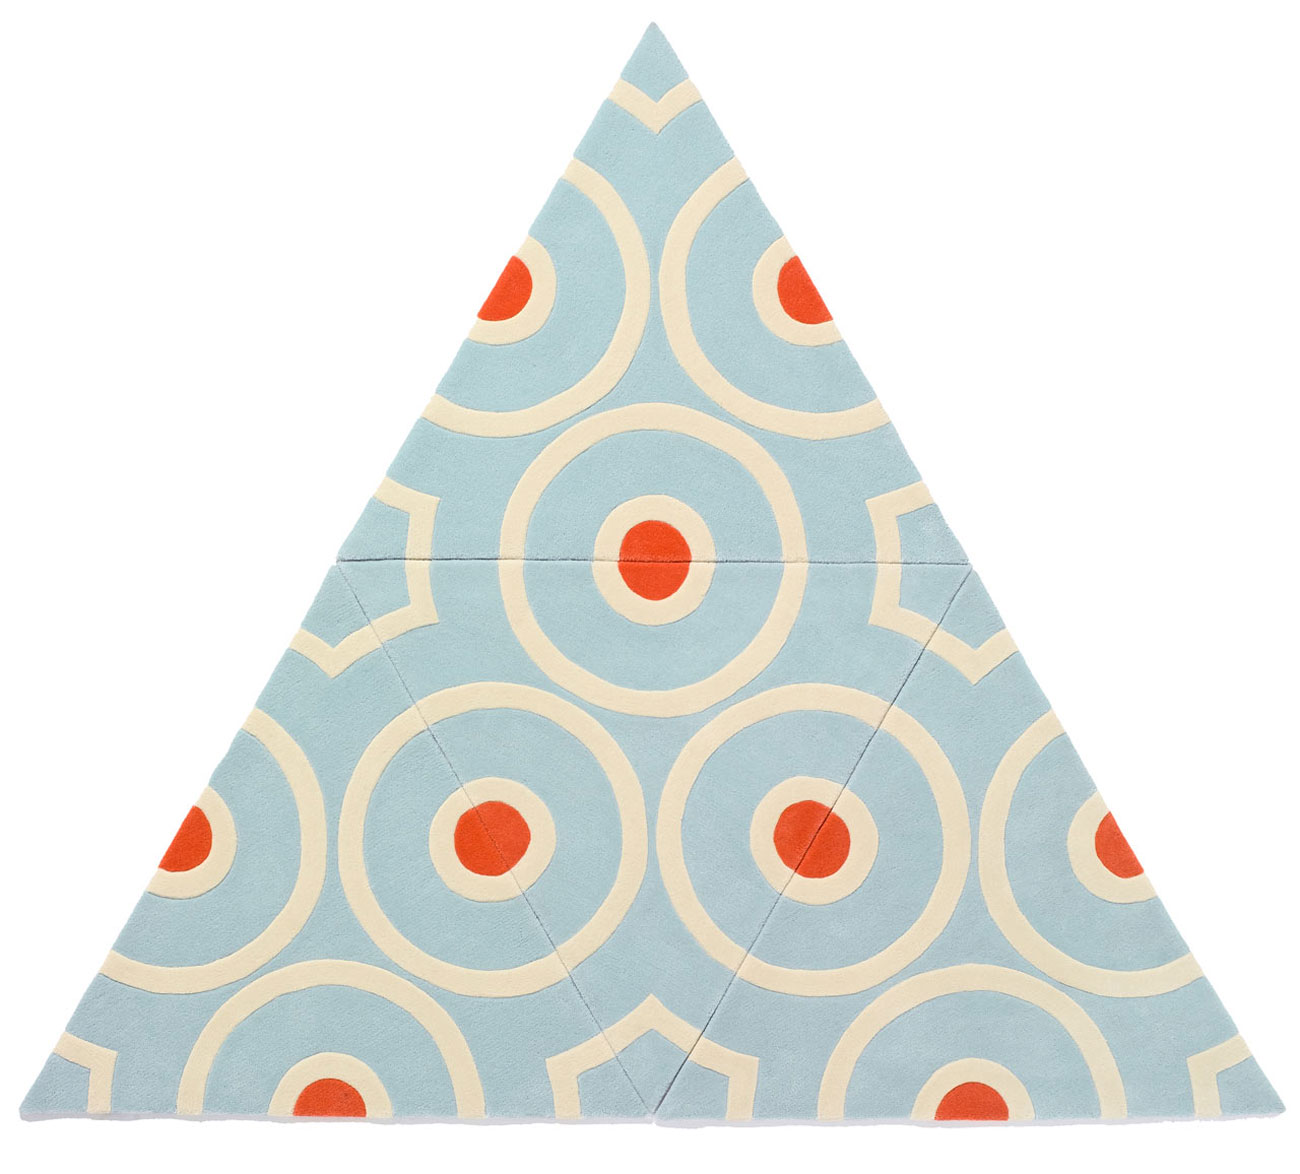 kinder ground modular carpet triangle